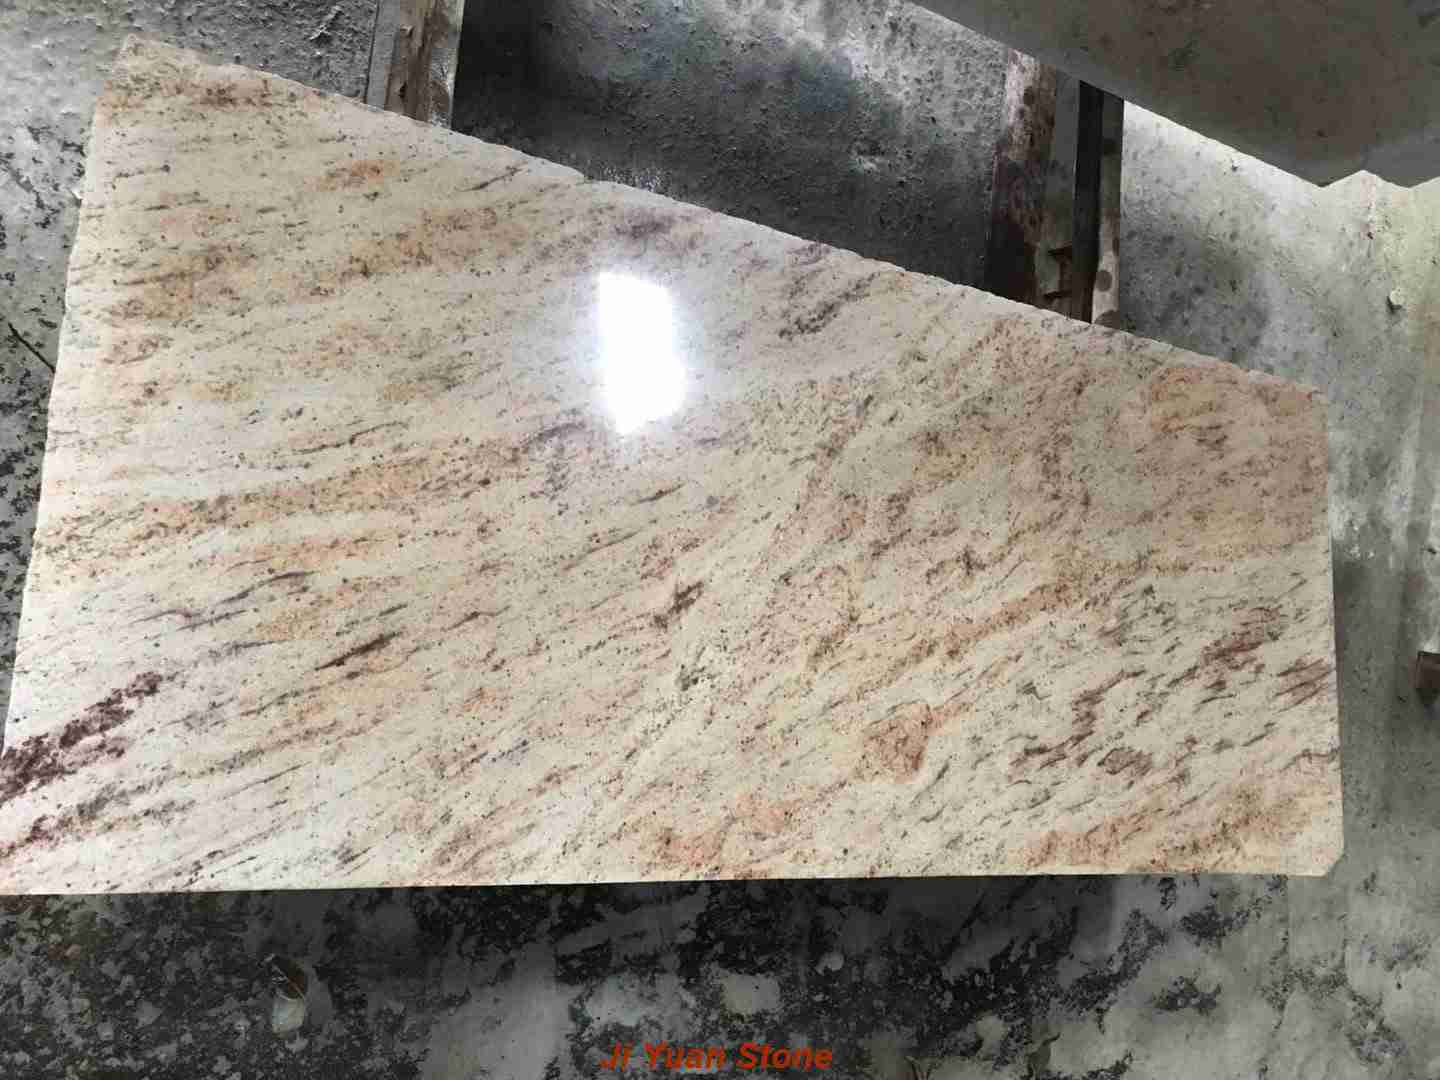 kashmir granite countertops,kashmir gold granite tiles,kashmir gold granite slab,kashmir granite worktops,cashmere granite countertops,kashmir cream granite countertops